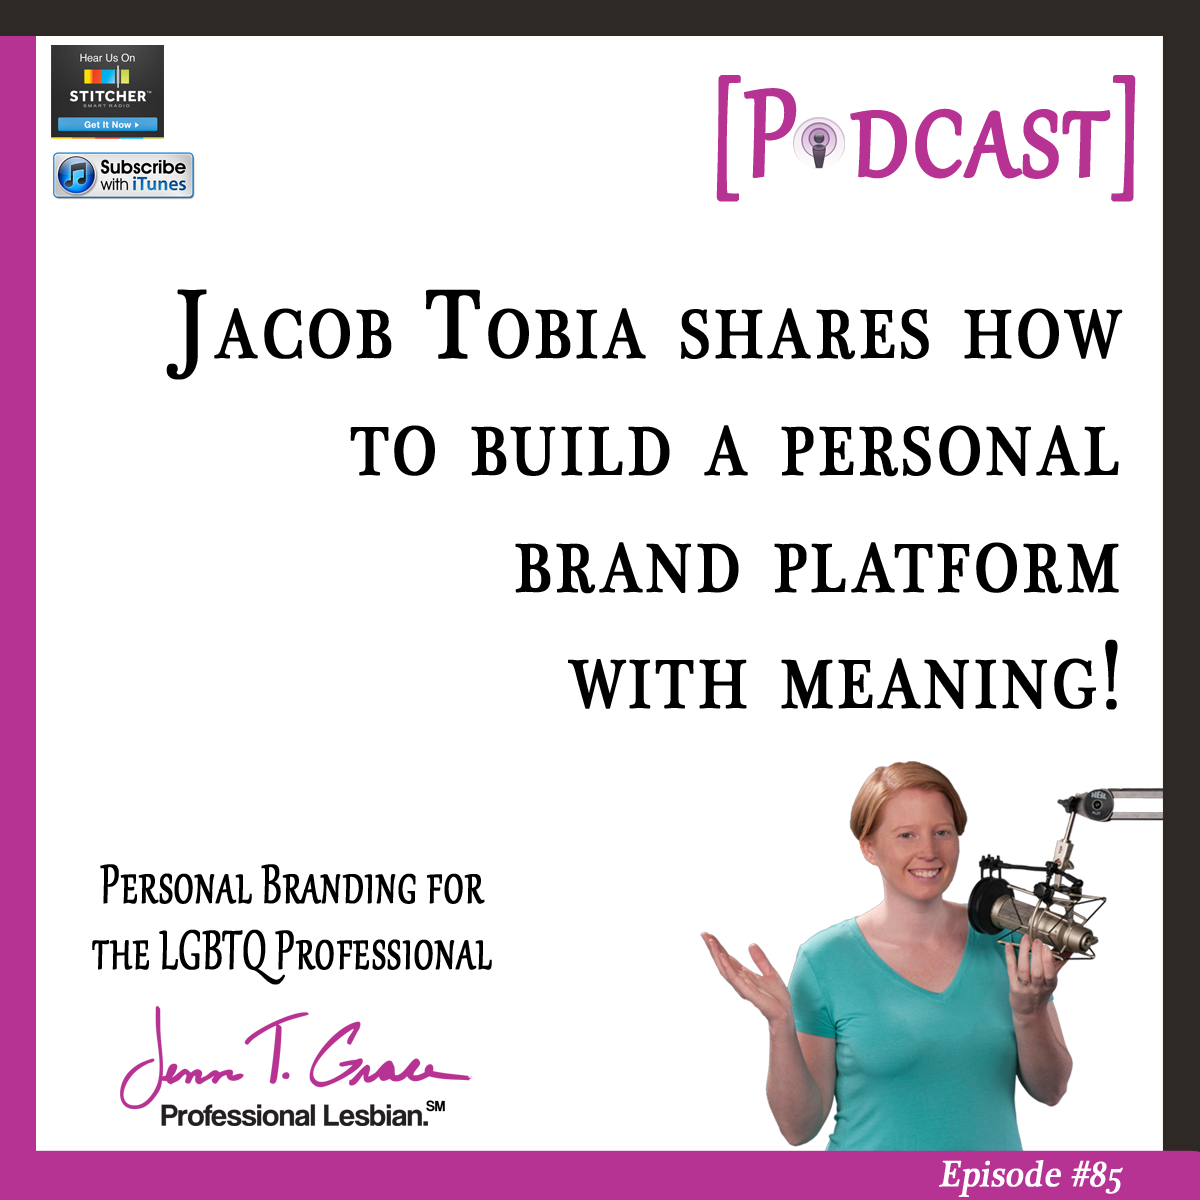 #85: Jacob Tobia Shares How to Build a Personal Brand Platform with Meaning